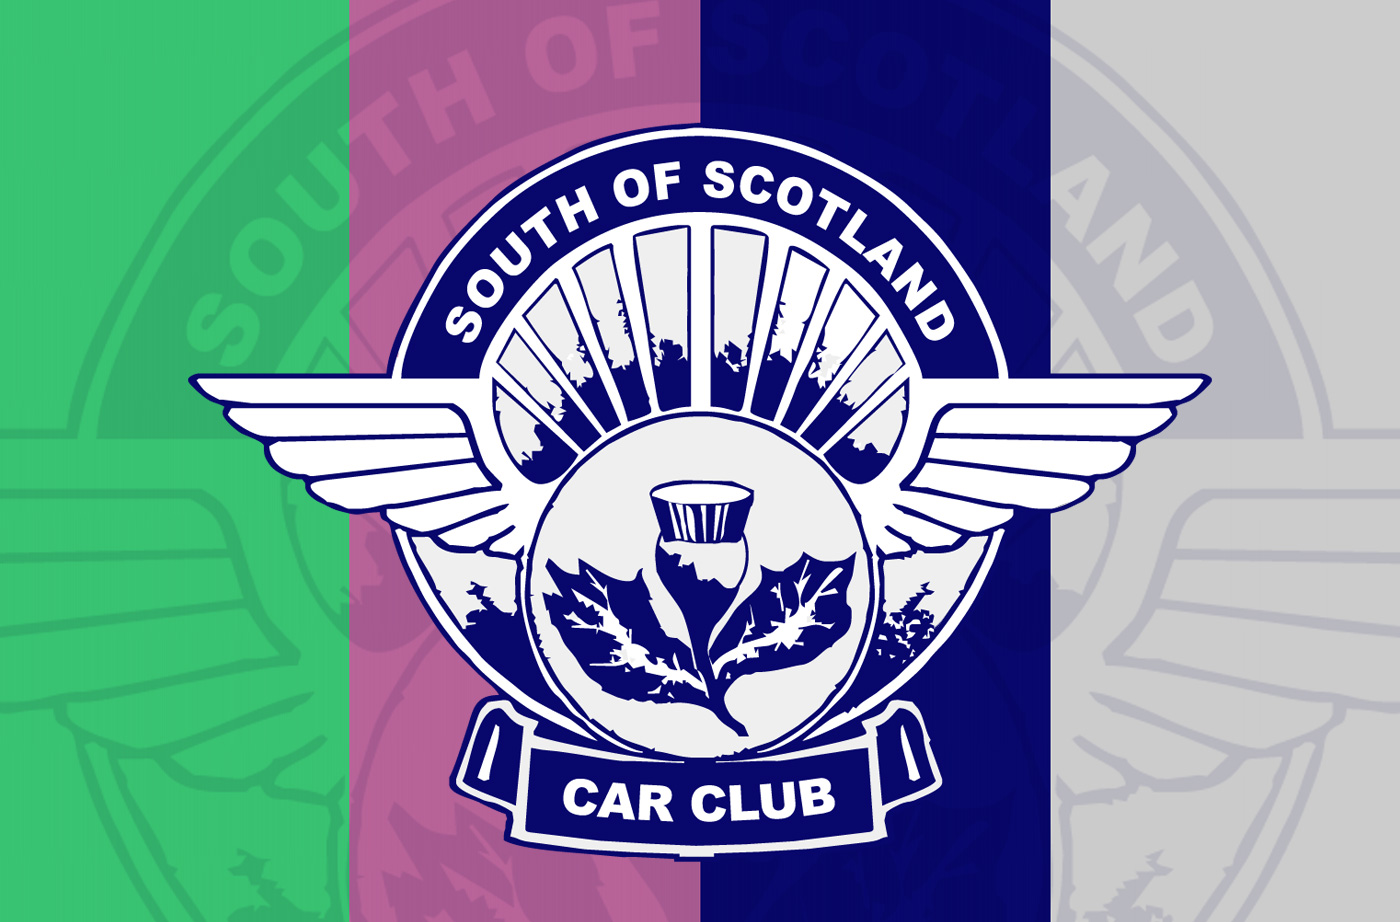 South of Scotland Classic members news